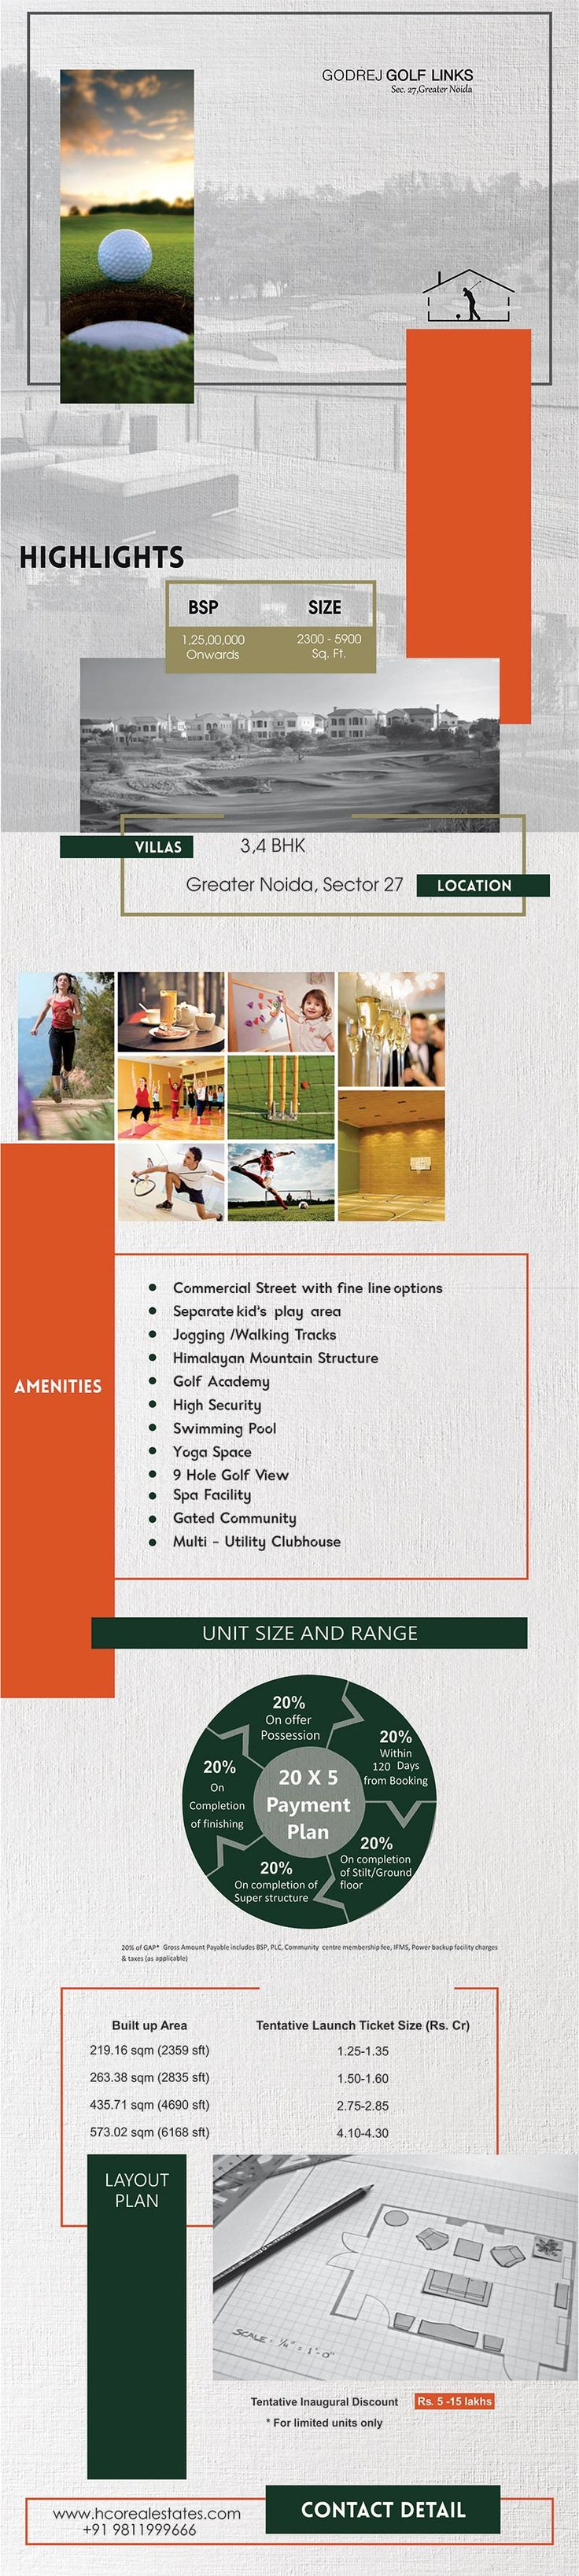 Godrej Properties presented Godrej Golf Links residential project in sector 27 Greater Noida and here 3 BHK & 4 BHK villas.